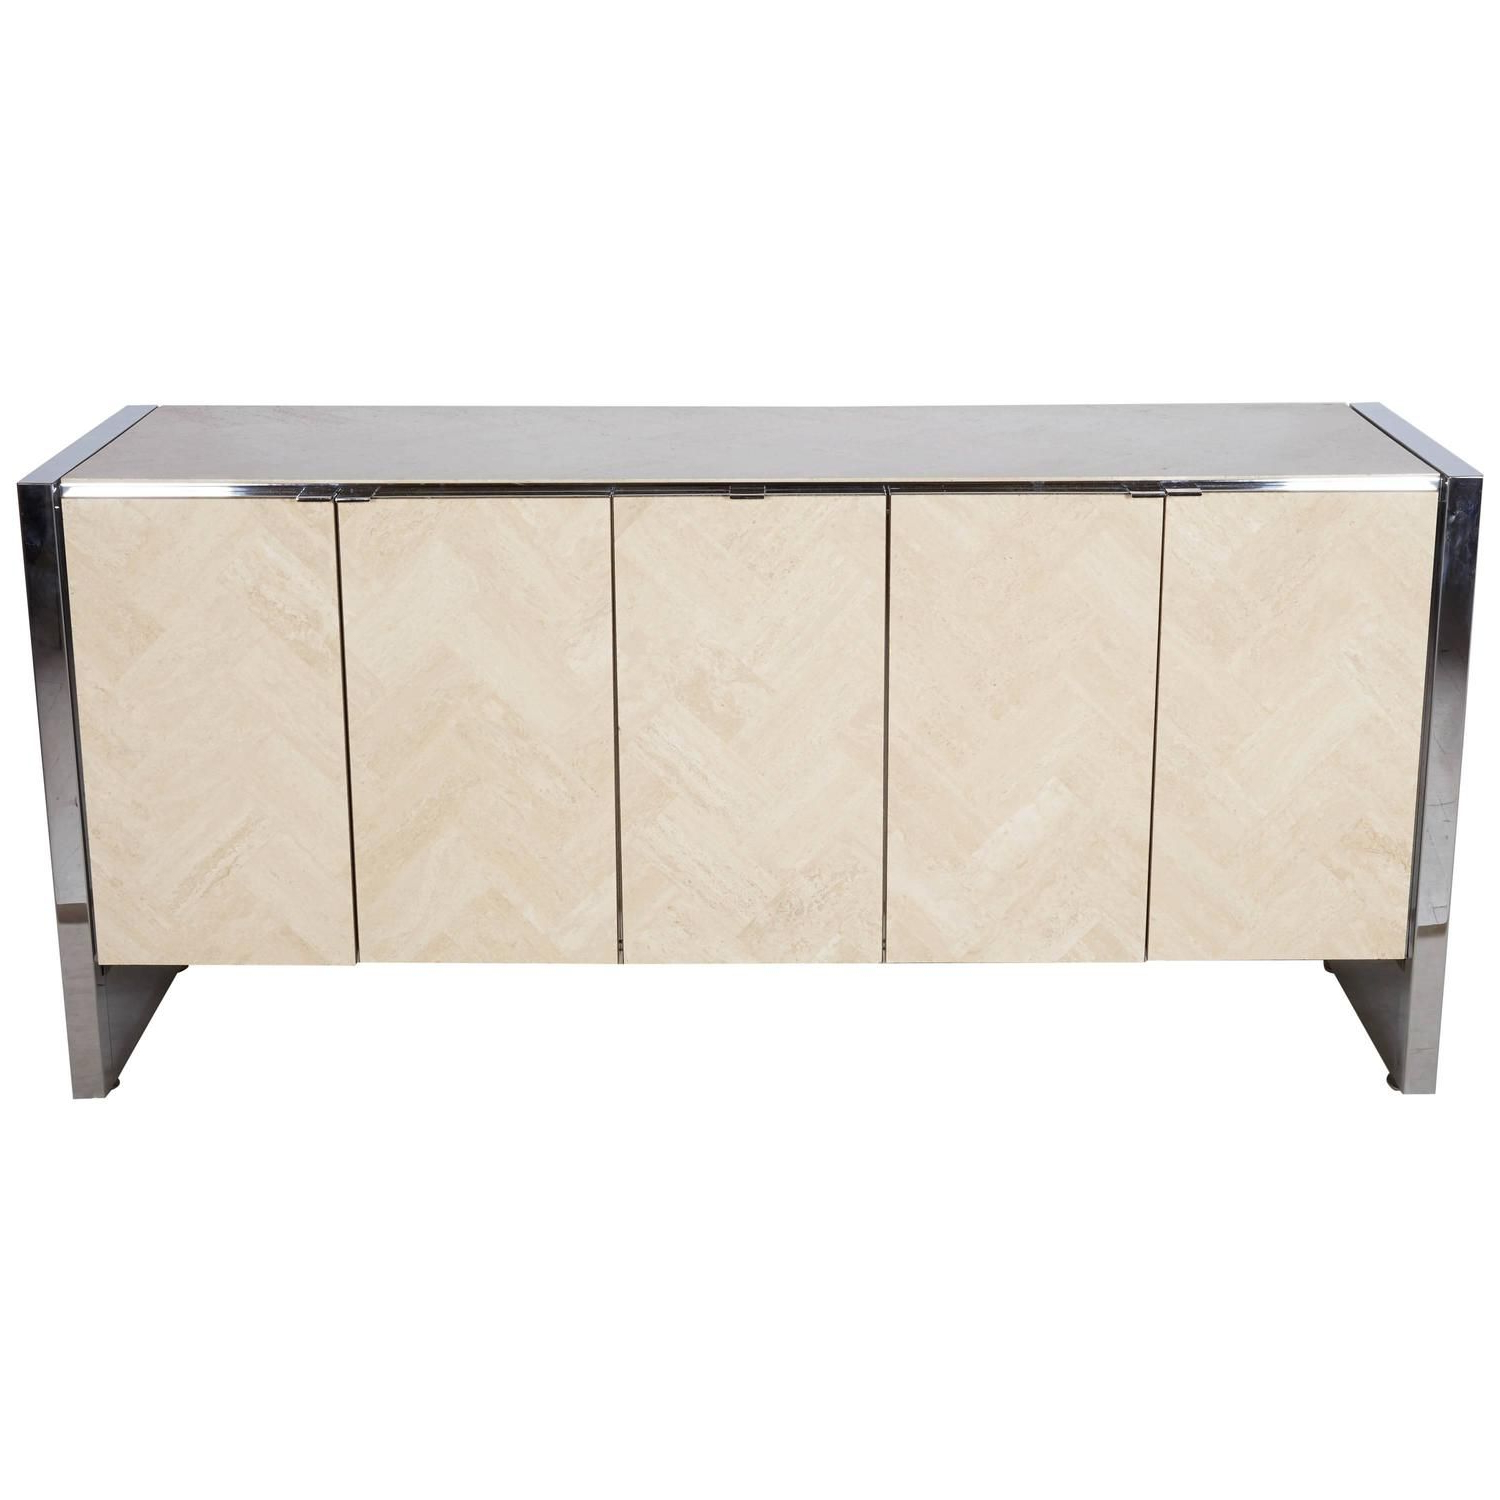 Stephen Credenzas Intended For 2020 Ello Credenza Finished In Carrara Marble In (View 2 of 20)